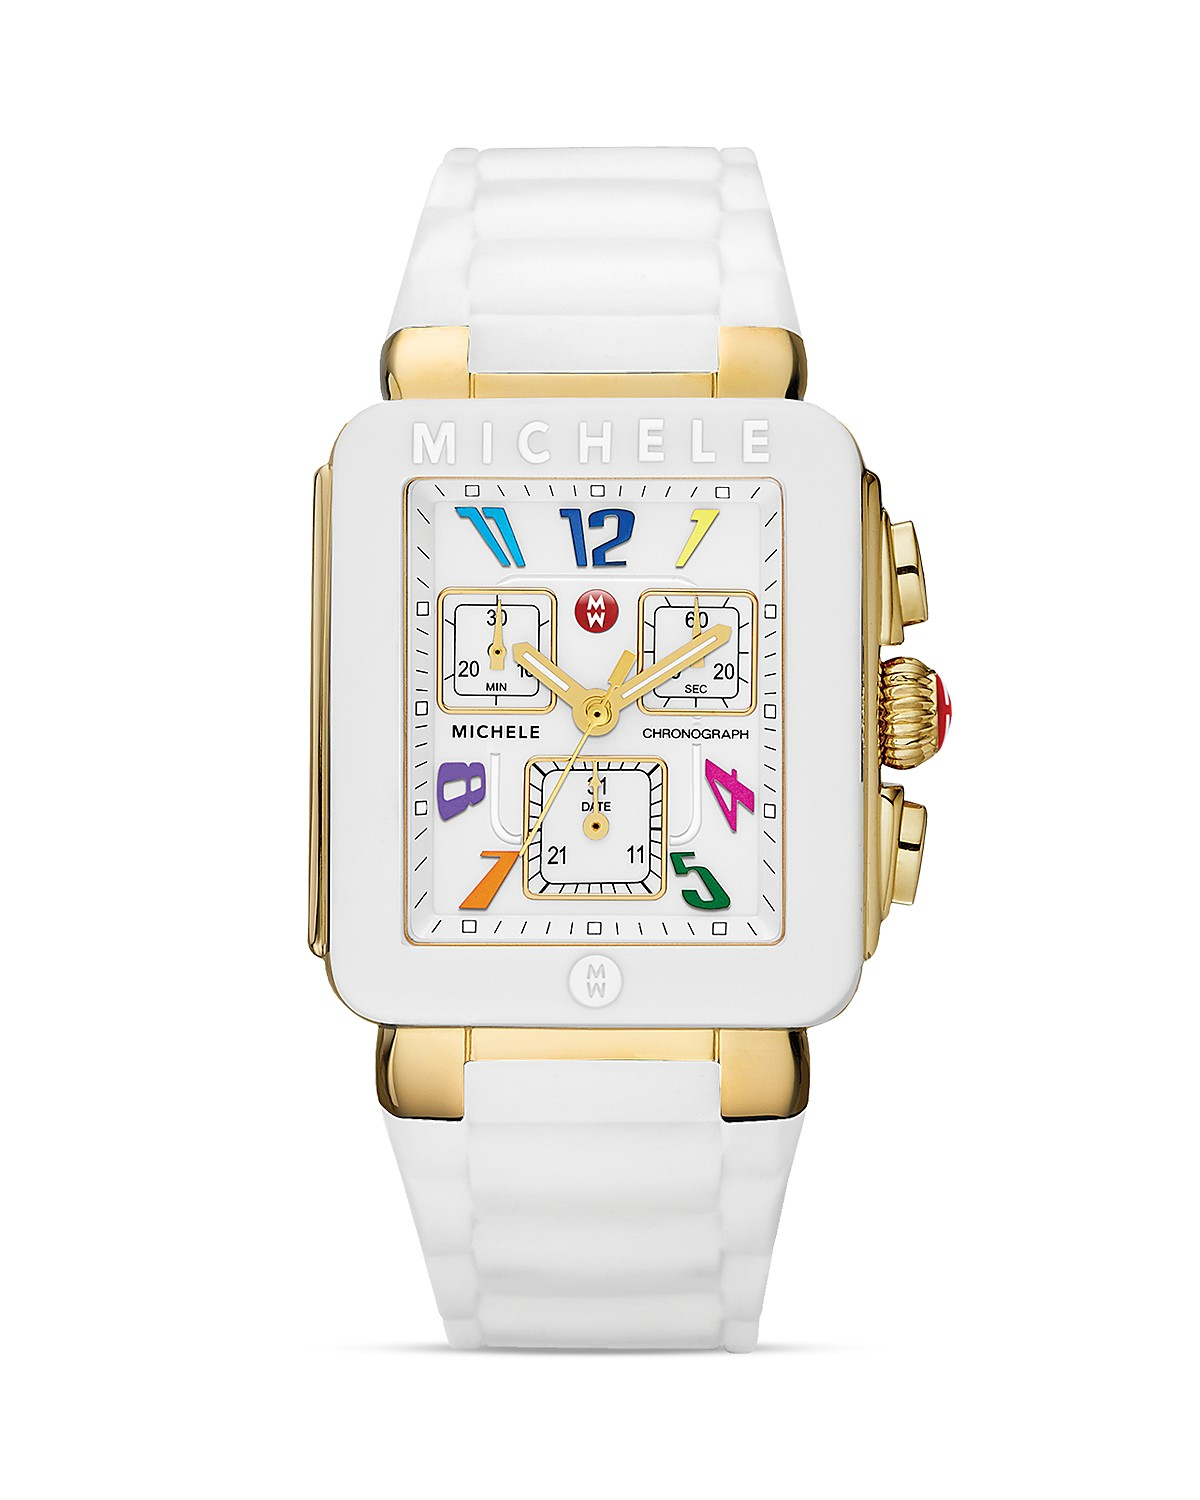 MICHELE Park Jelly Bean White Carousel Watch, 33mm | Bloomingdale's